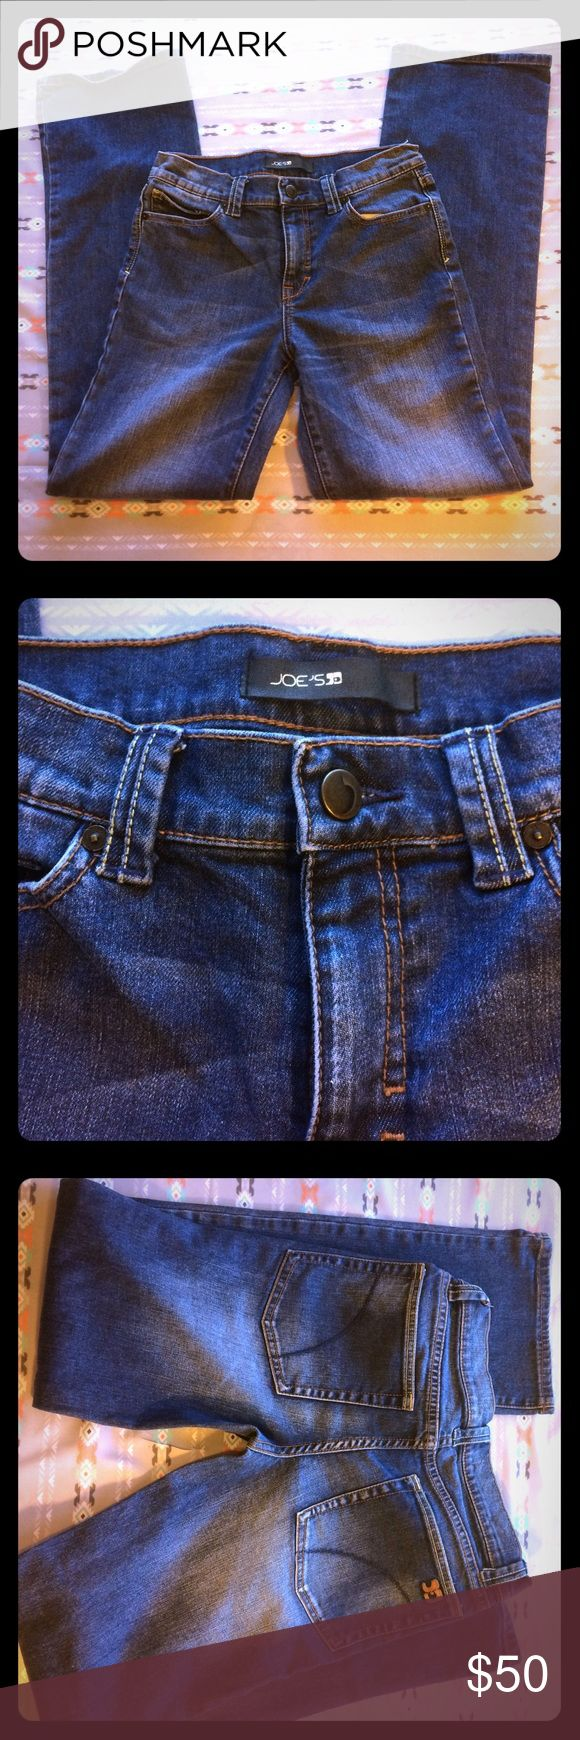 """YOUTH BOYS BOOTCUT JOES """"ENZO"""" JEANS 👖 NEVER WORN THANK YOU SO MUCH for stopping by Unicorn 🦄 Alley! I am currently raising money for Tendon replacement surgery; as I have radial nerve palsy and have to wear braces on my arms in order to do basic tasks! :) but I am making the best of it! I have a bunch of name brand clothes to sell, and your purchase means the WORLD to me! I love Posh and making new friends so feel free to leave me a comment, I'm always up for new Posh Pals!!! 🤘🏼✌🏼GOD…"""